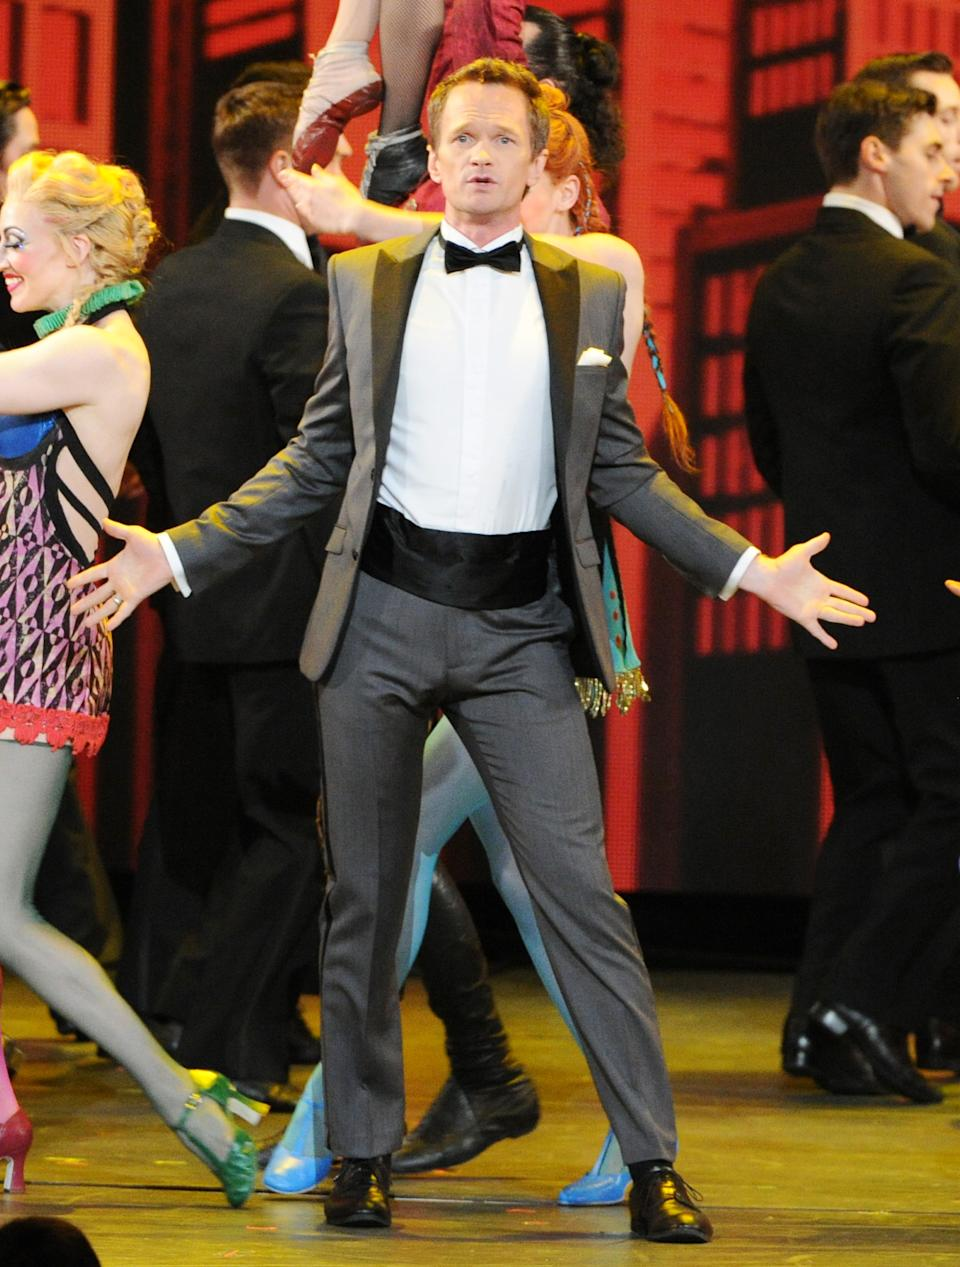 "FILE - This June 9, 2013 file photo shows actor Neil Patrick Harris performing on stage at the 67th Annual Tony Awards in New York. Harris will star in an extremely unconventional Broadway show ""Hedwig and the Angry Inch."" (Photo by Evan Agostini/Invision/AP, File)"